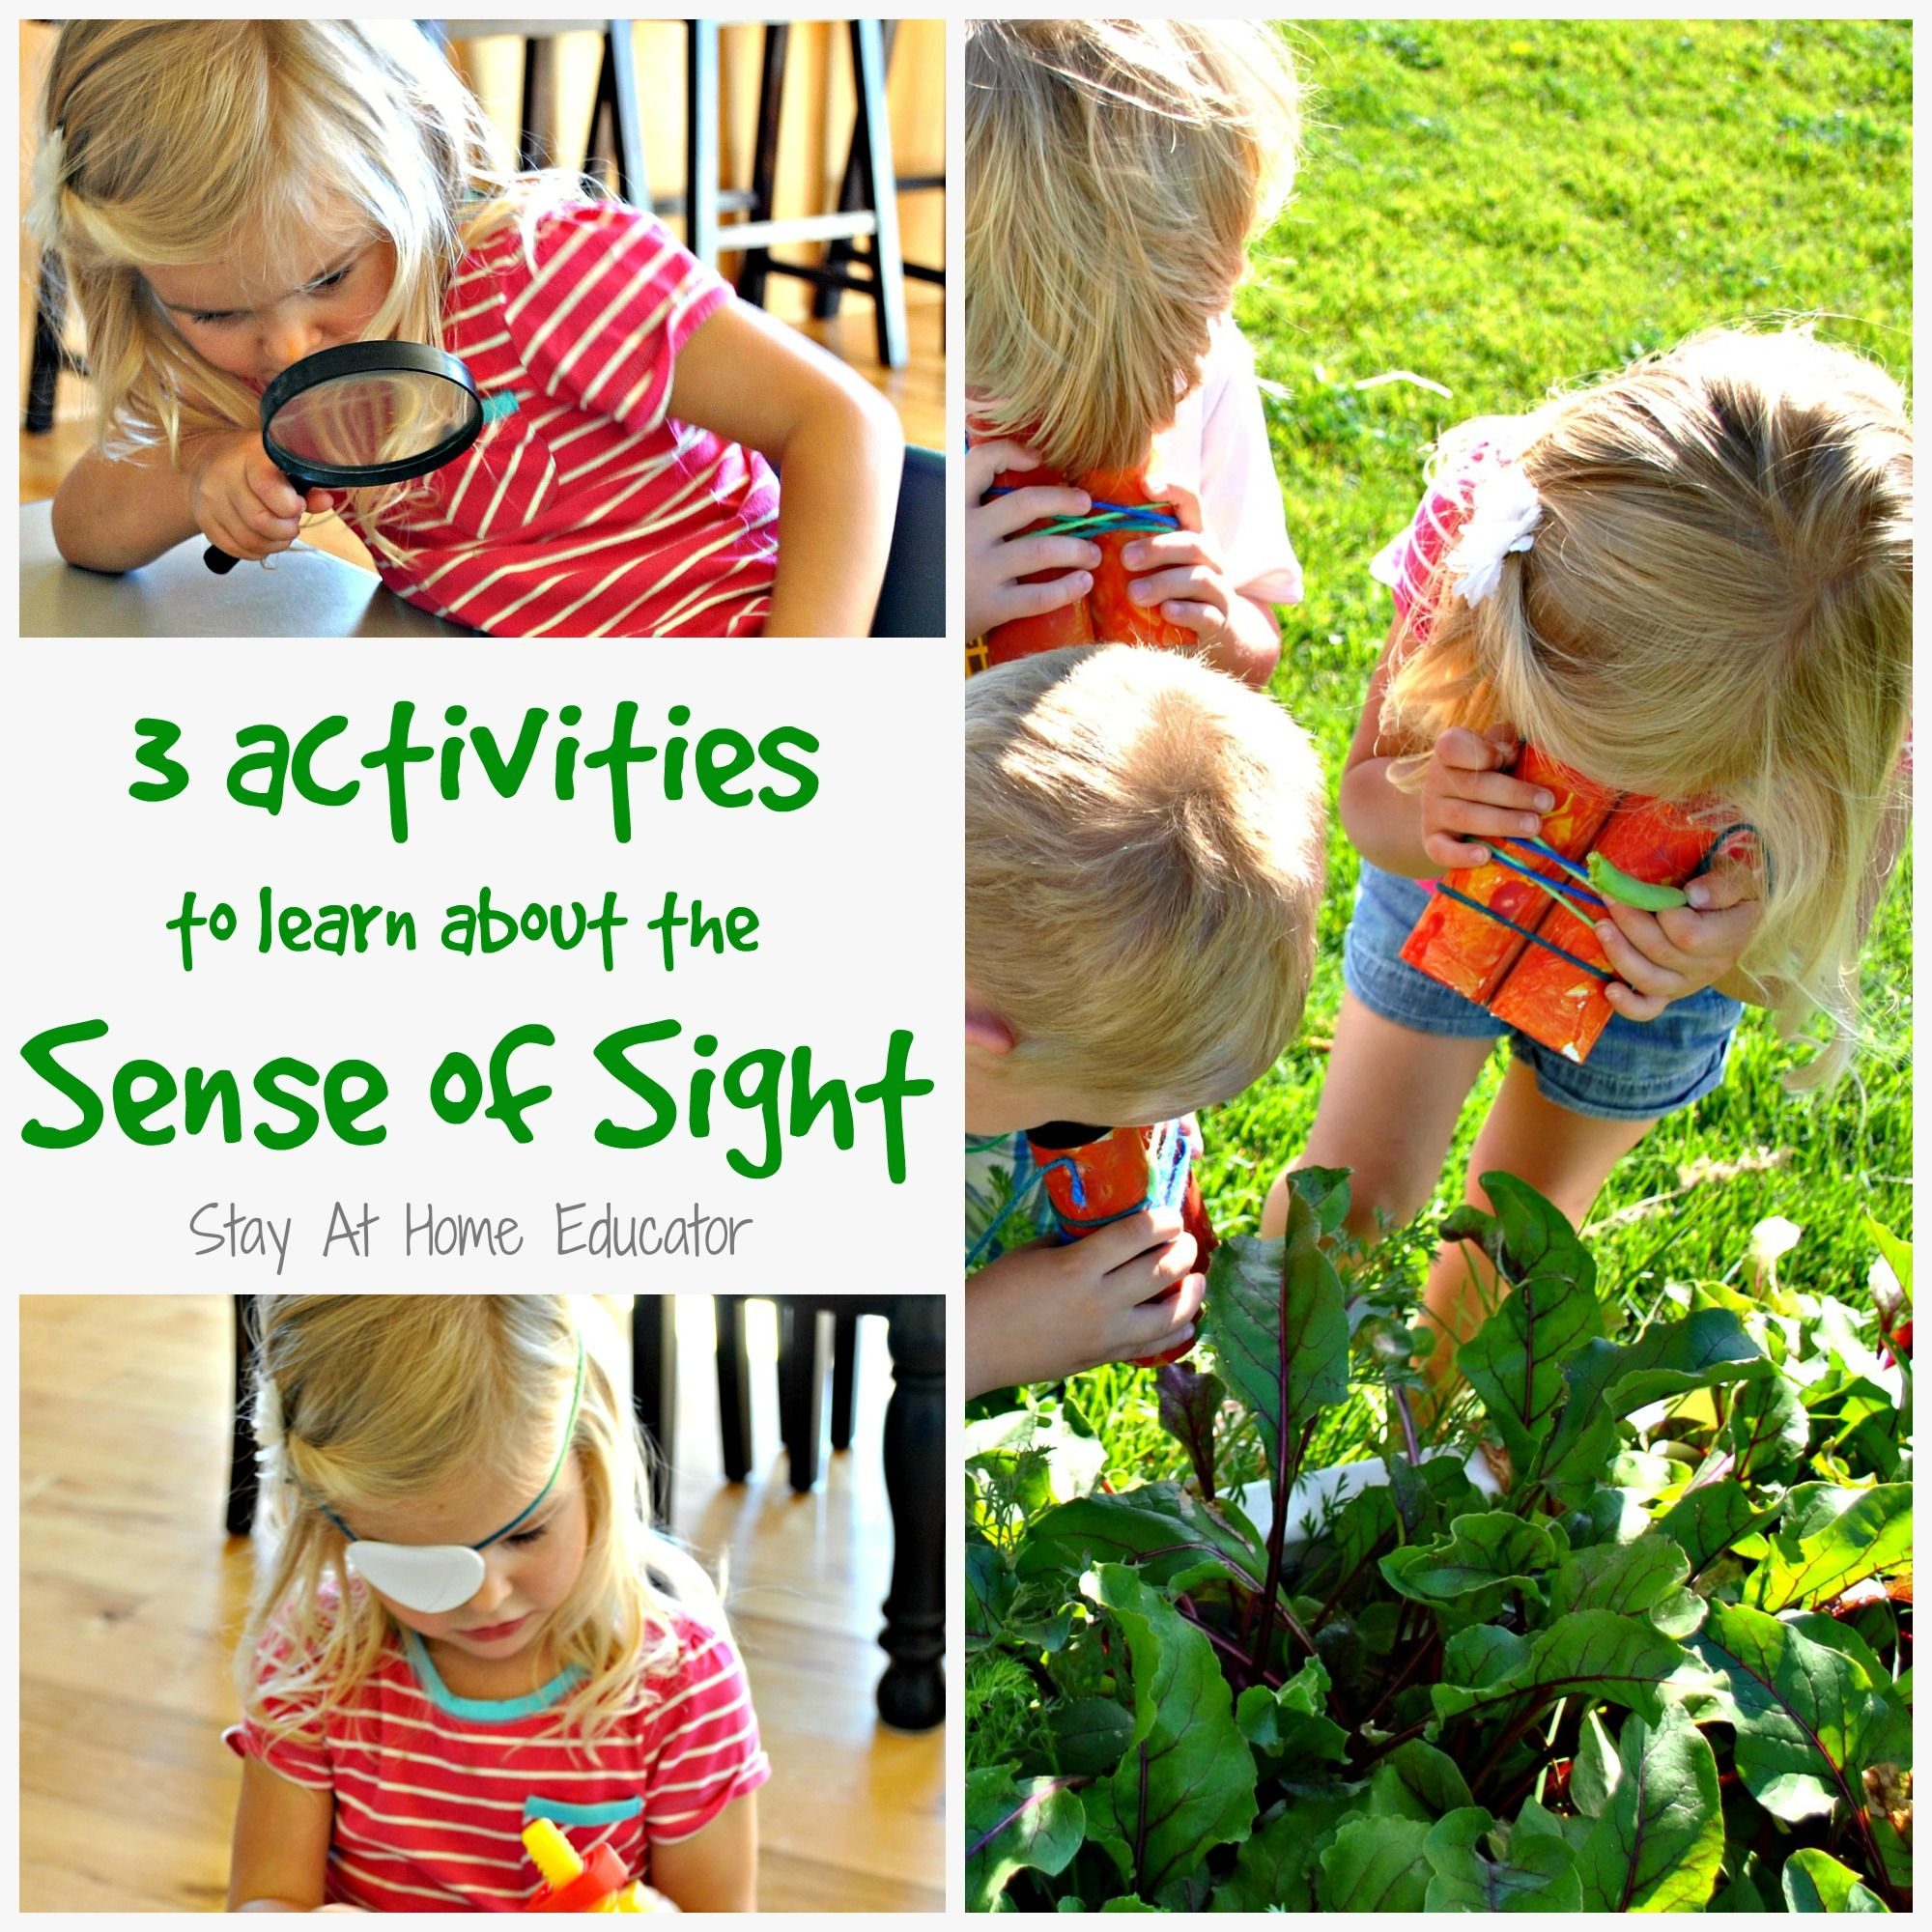 Three Activities To Learn About The Sense Of Sight